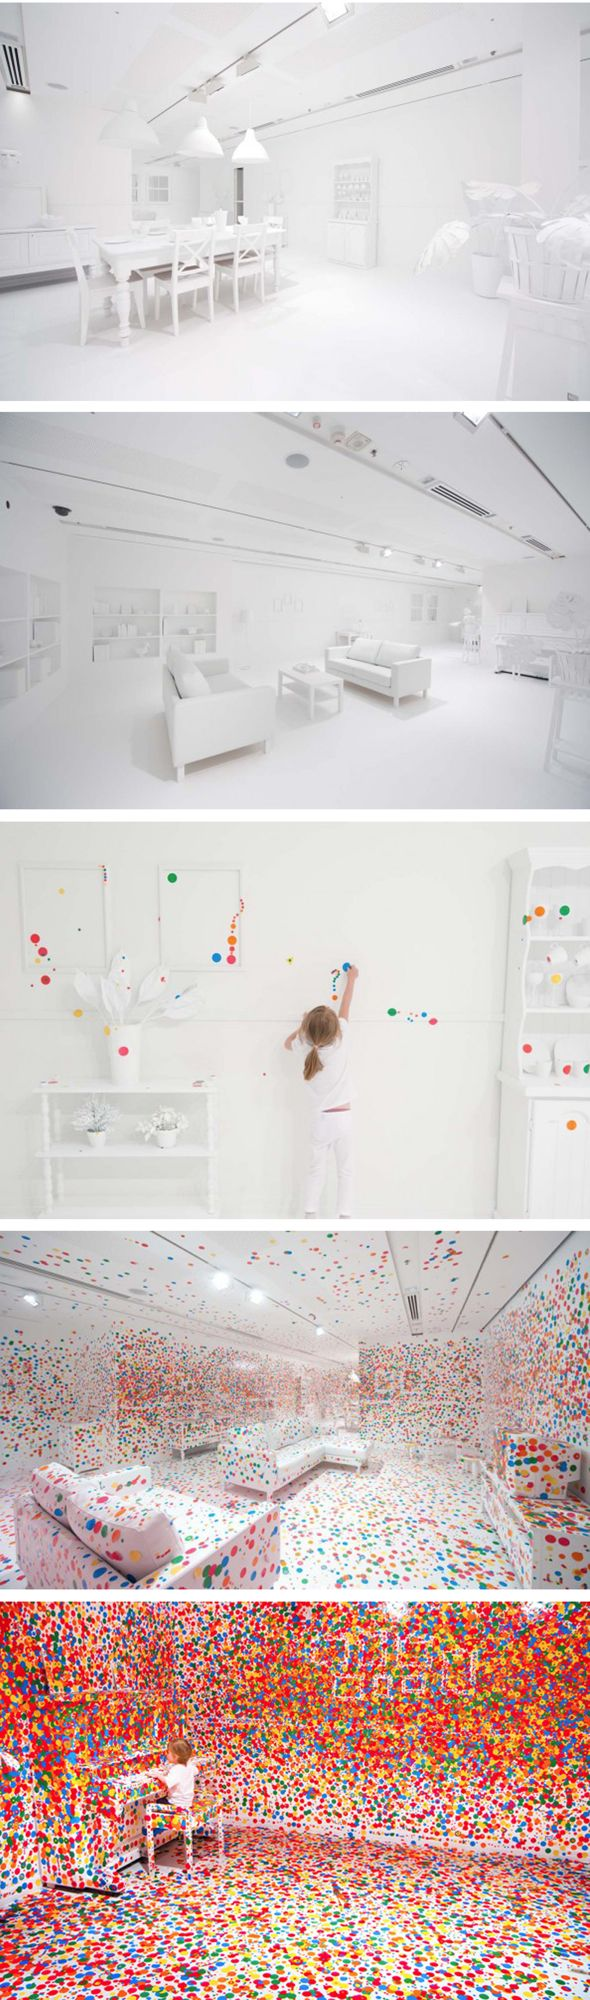 "What happens when you give thousands of kids thousands of colored dots in an all white room? The Obliteration Room-Interactive Art Exhibit // Queensland gallery of Modern Art // ""Obliteration Room"" by Yayoi Kusama #installation #art"